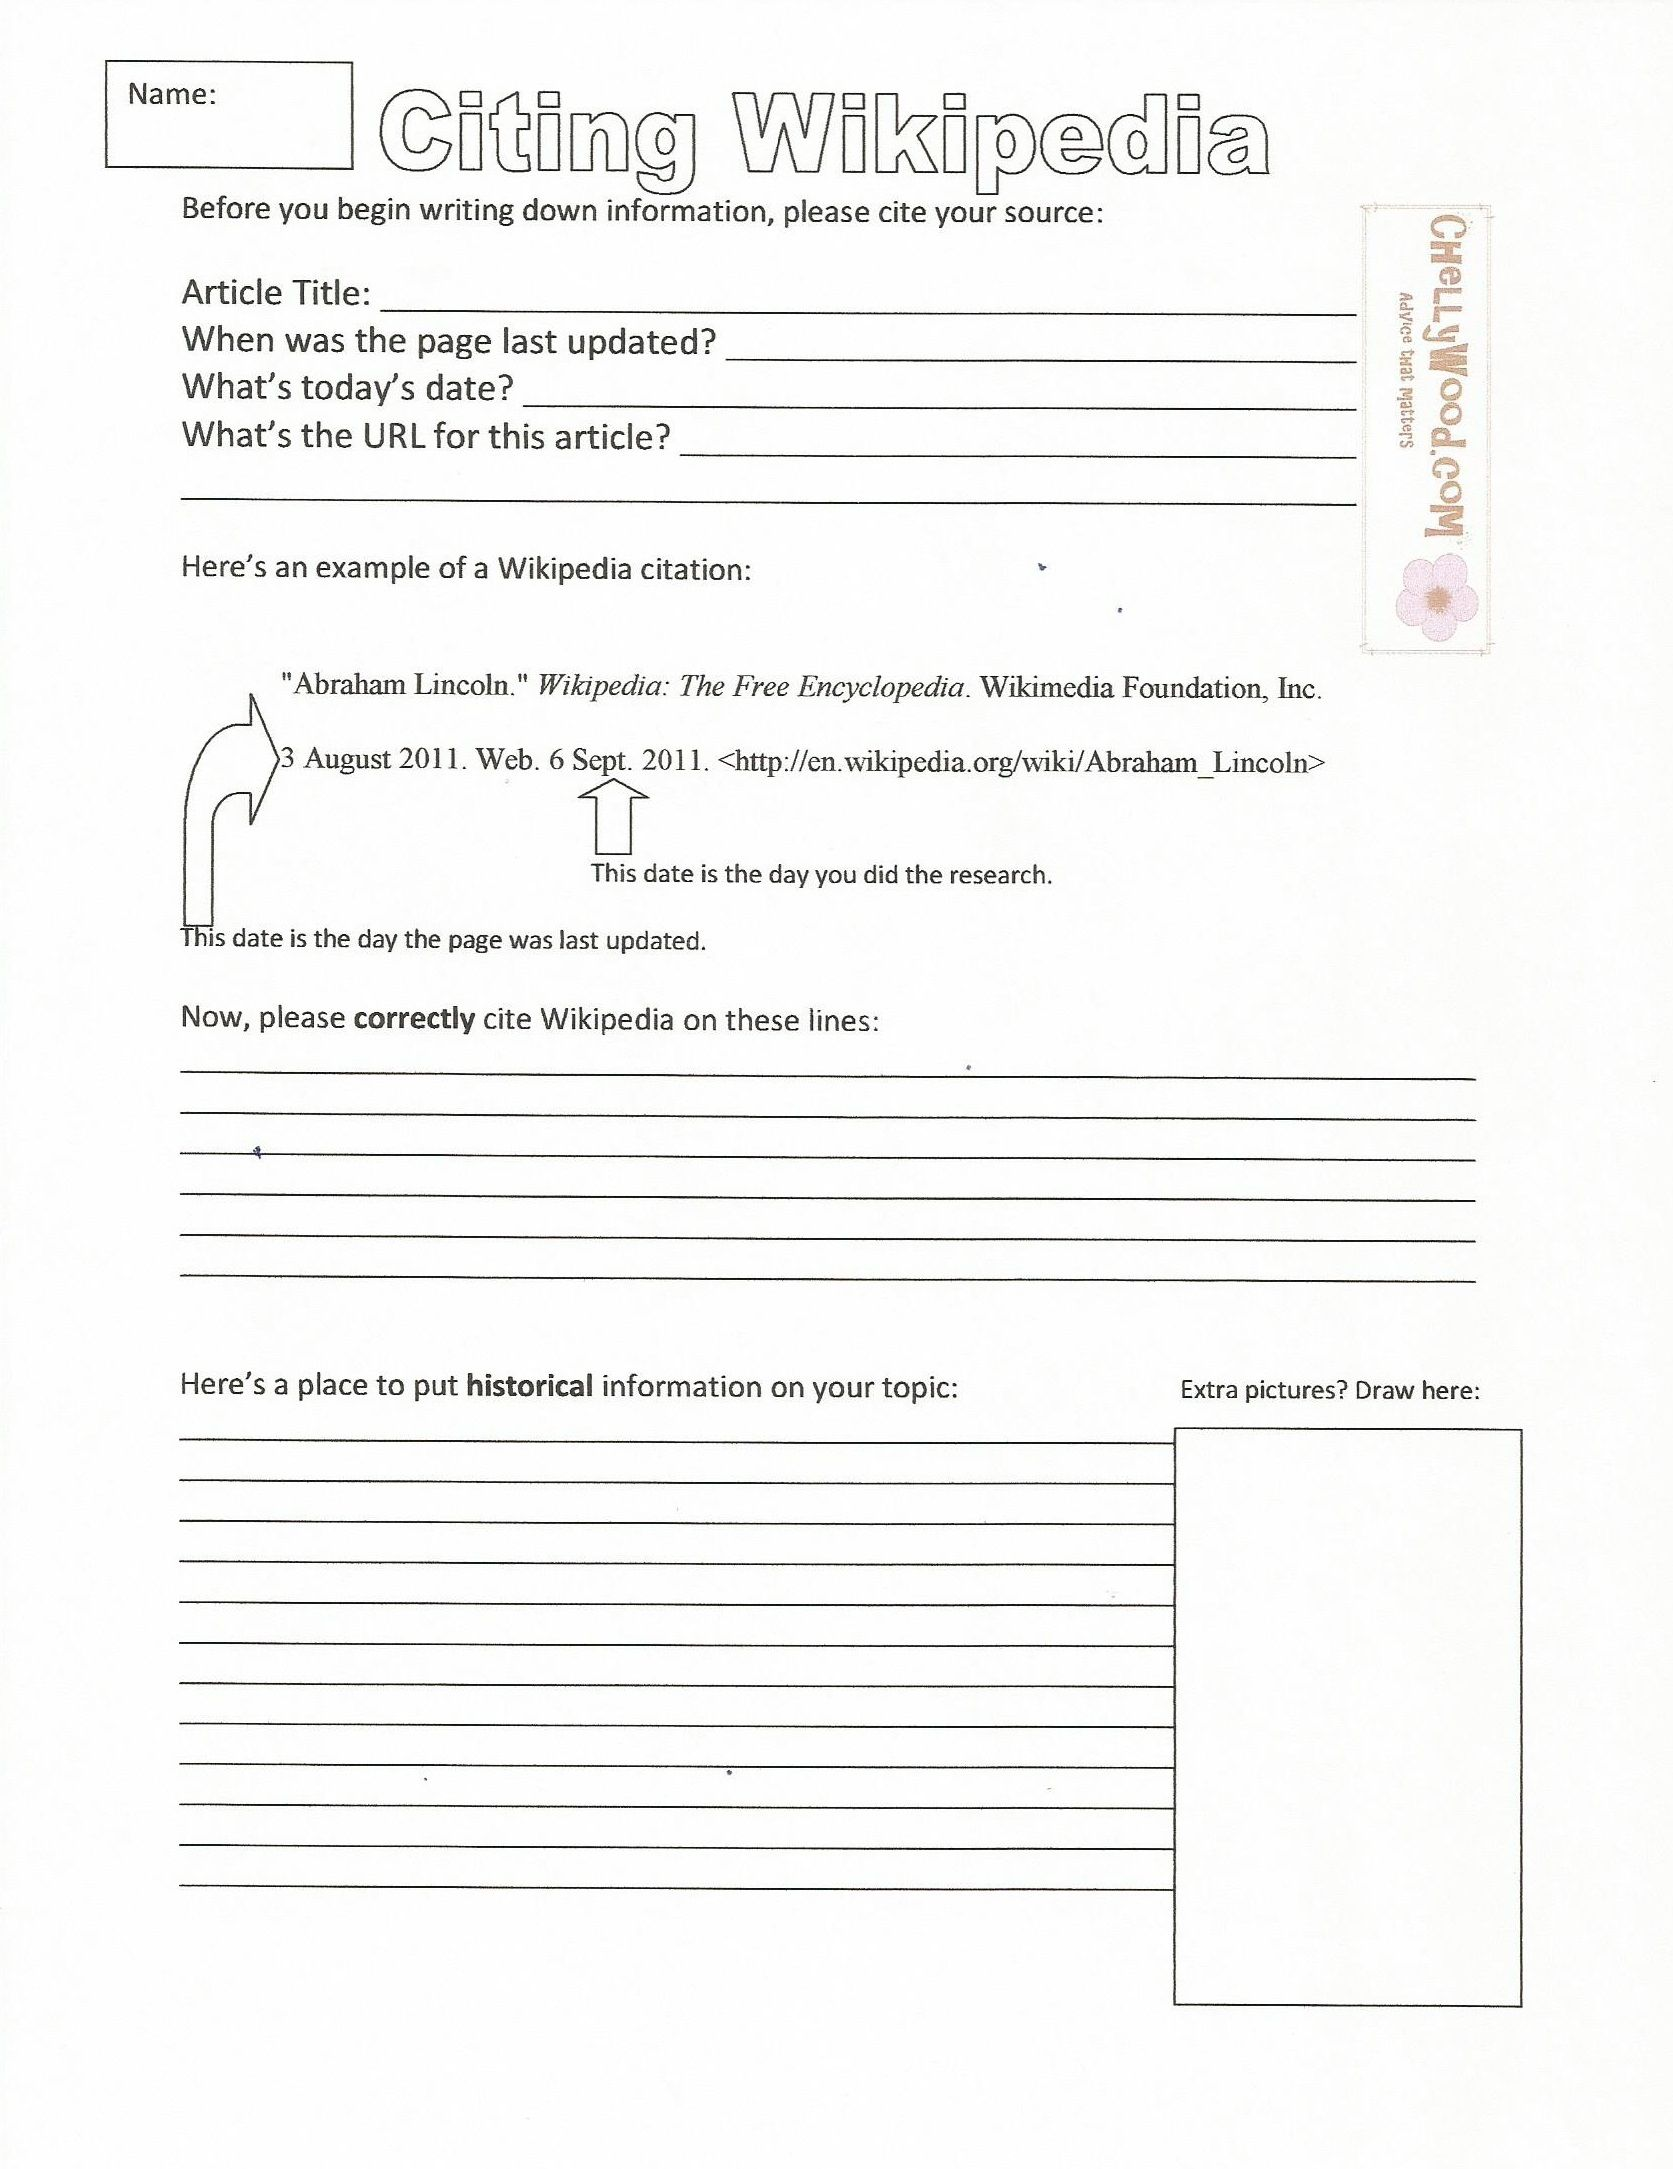 This Is Page 1 Of The Wikipedia Handout Page 2 And Hundreds Of Other Free Printable Handouts